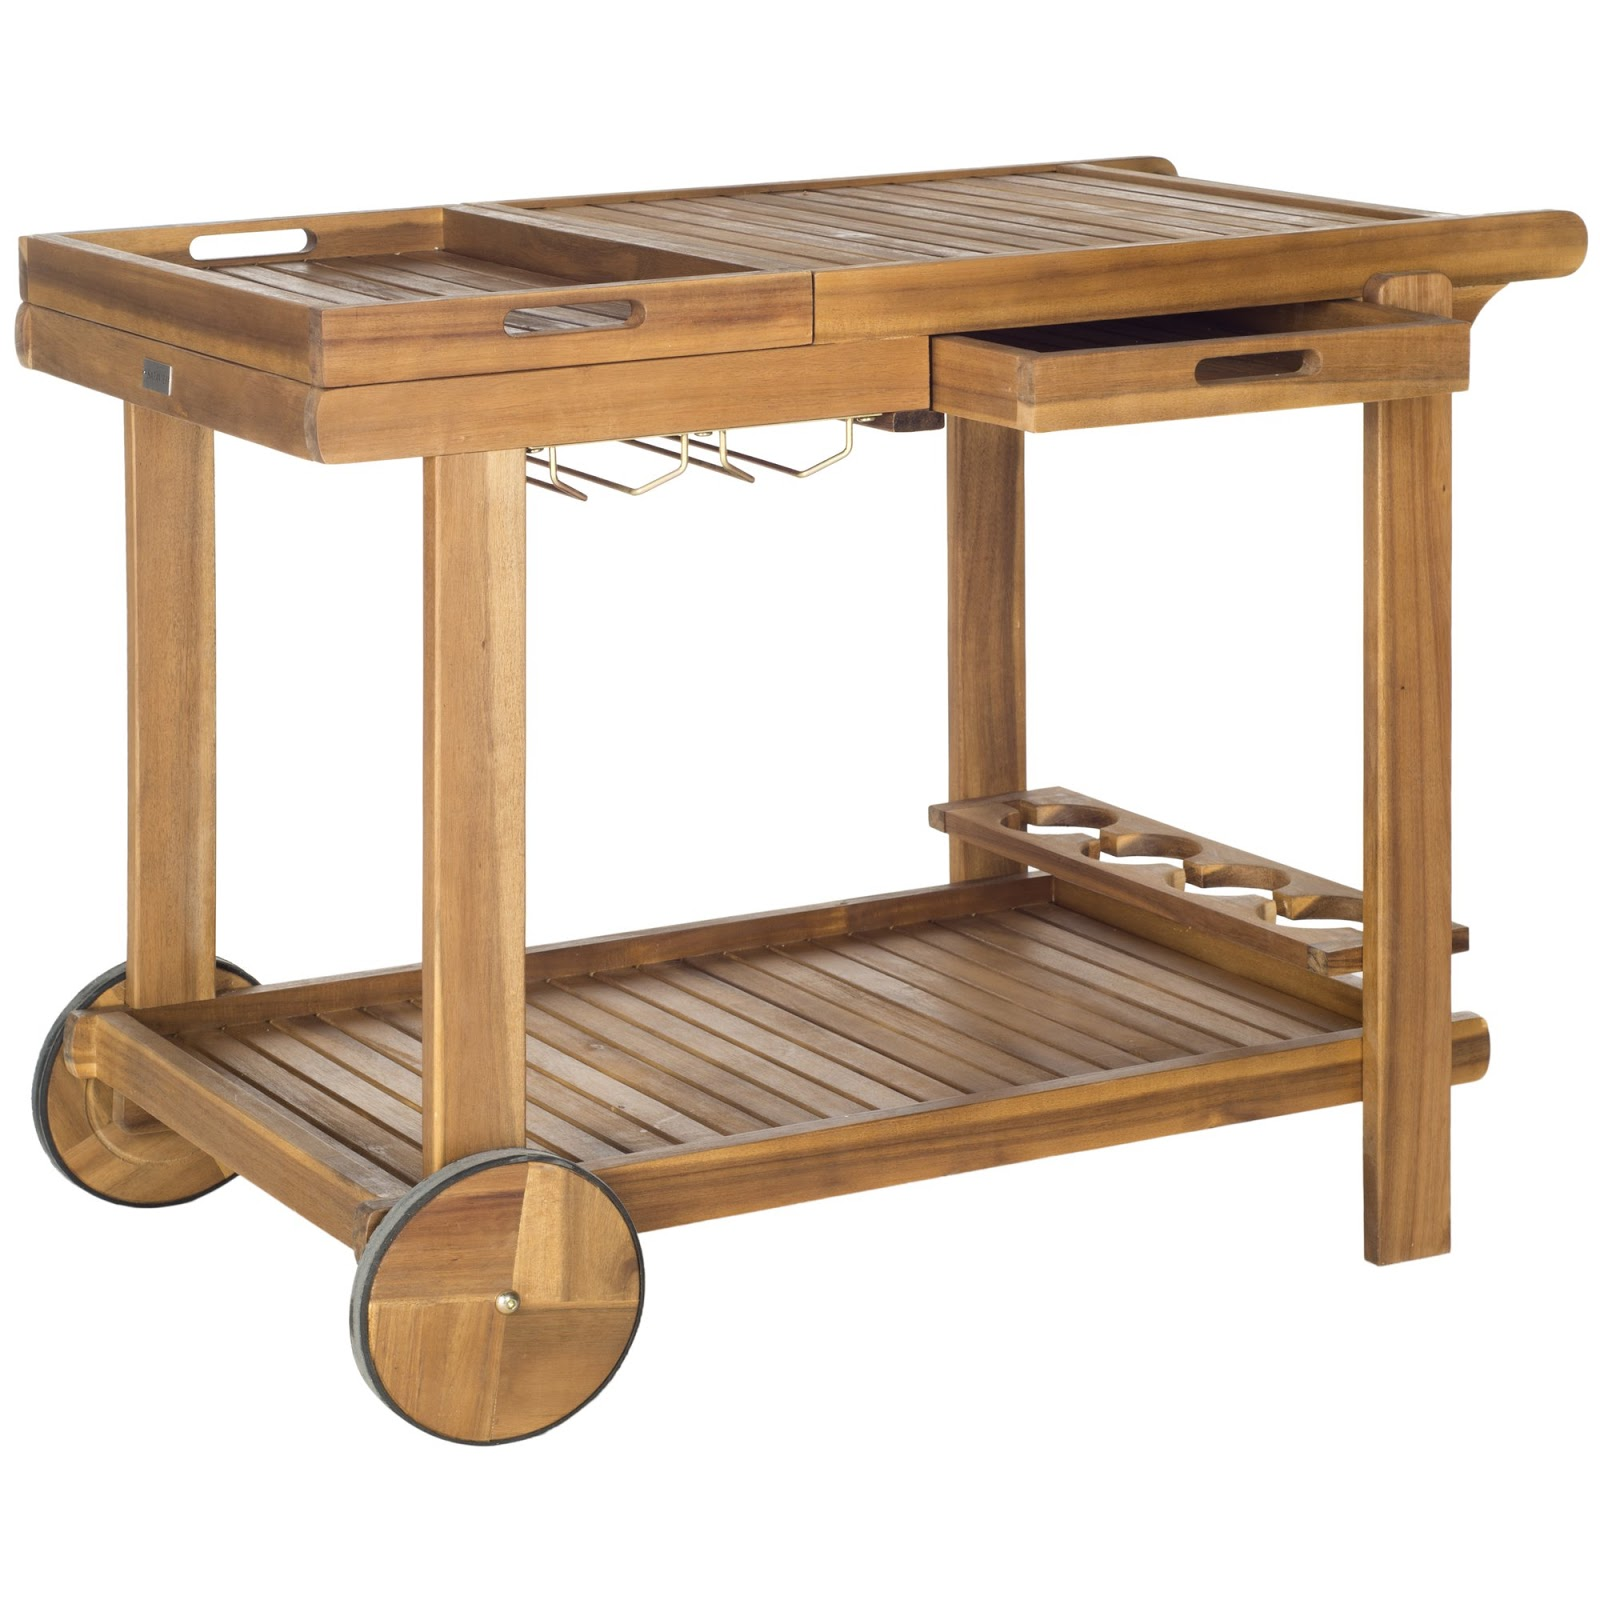 Safavieh Orland Tea Trolley at Decor Market - found on Hello Lovely Studio